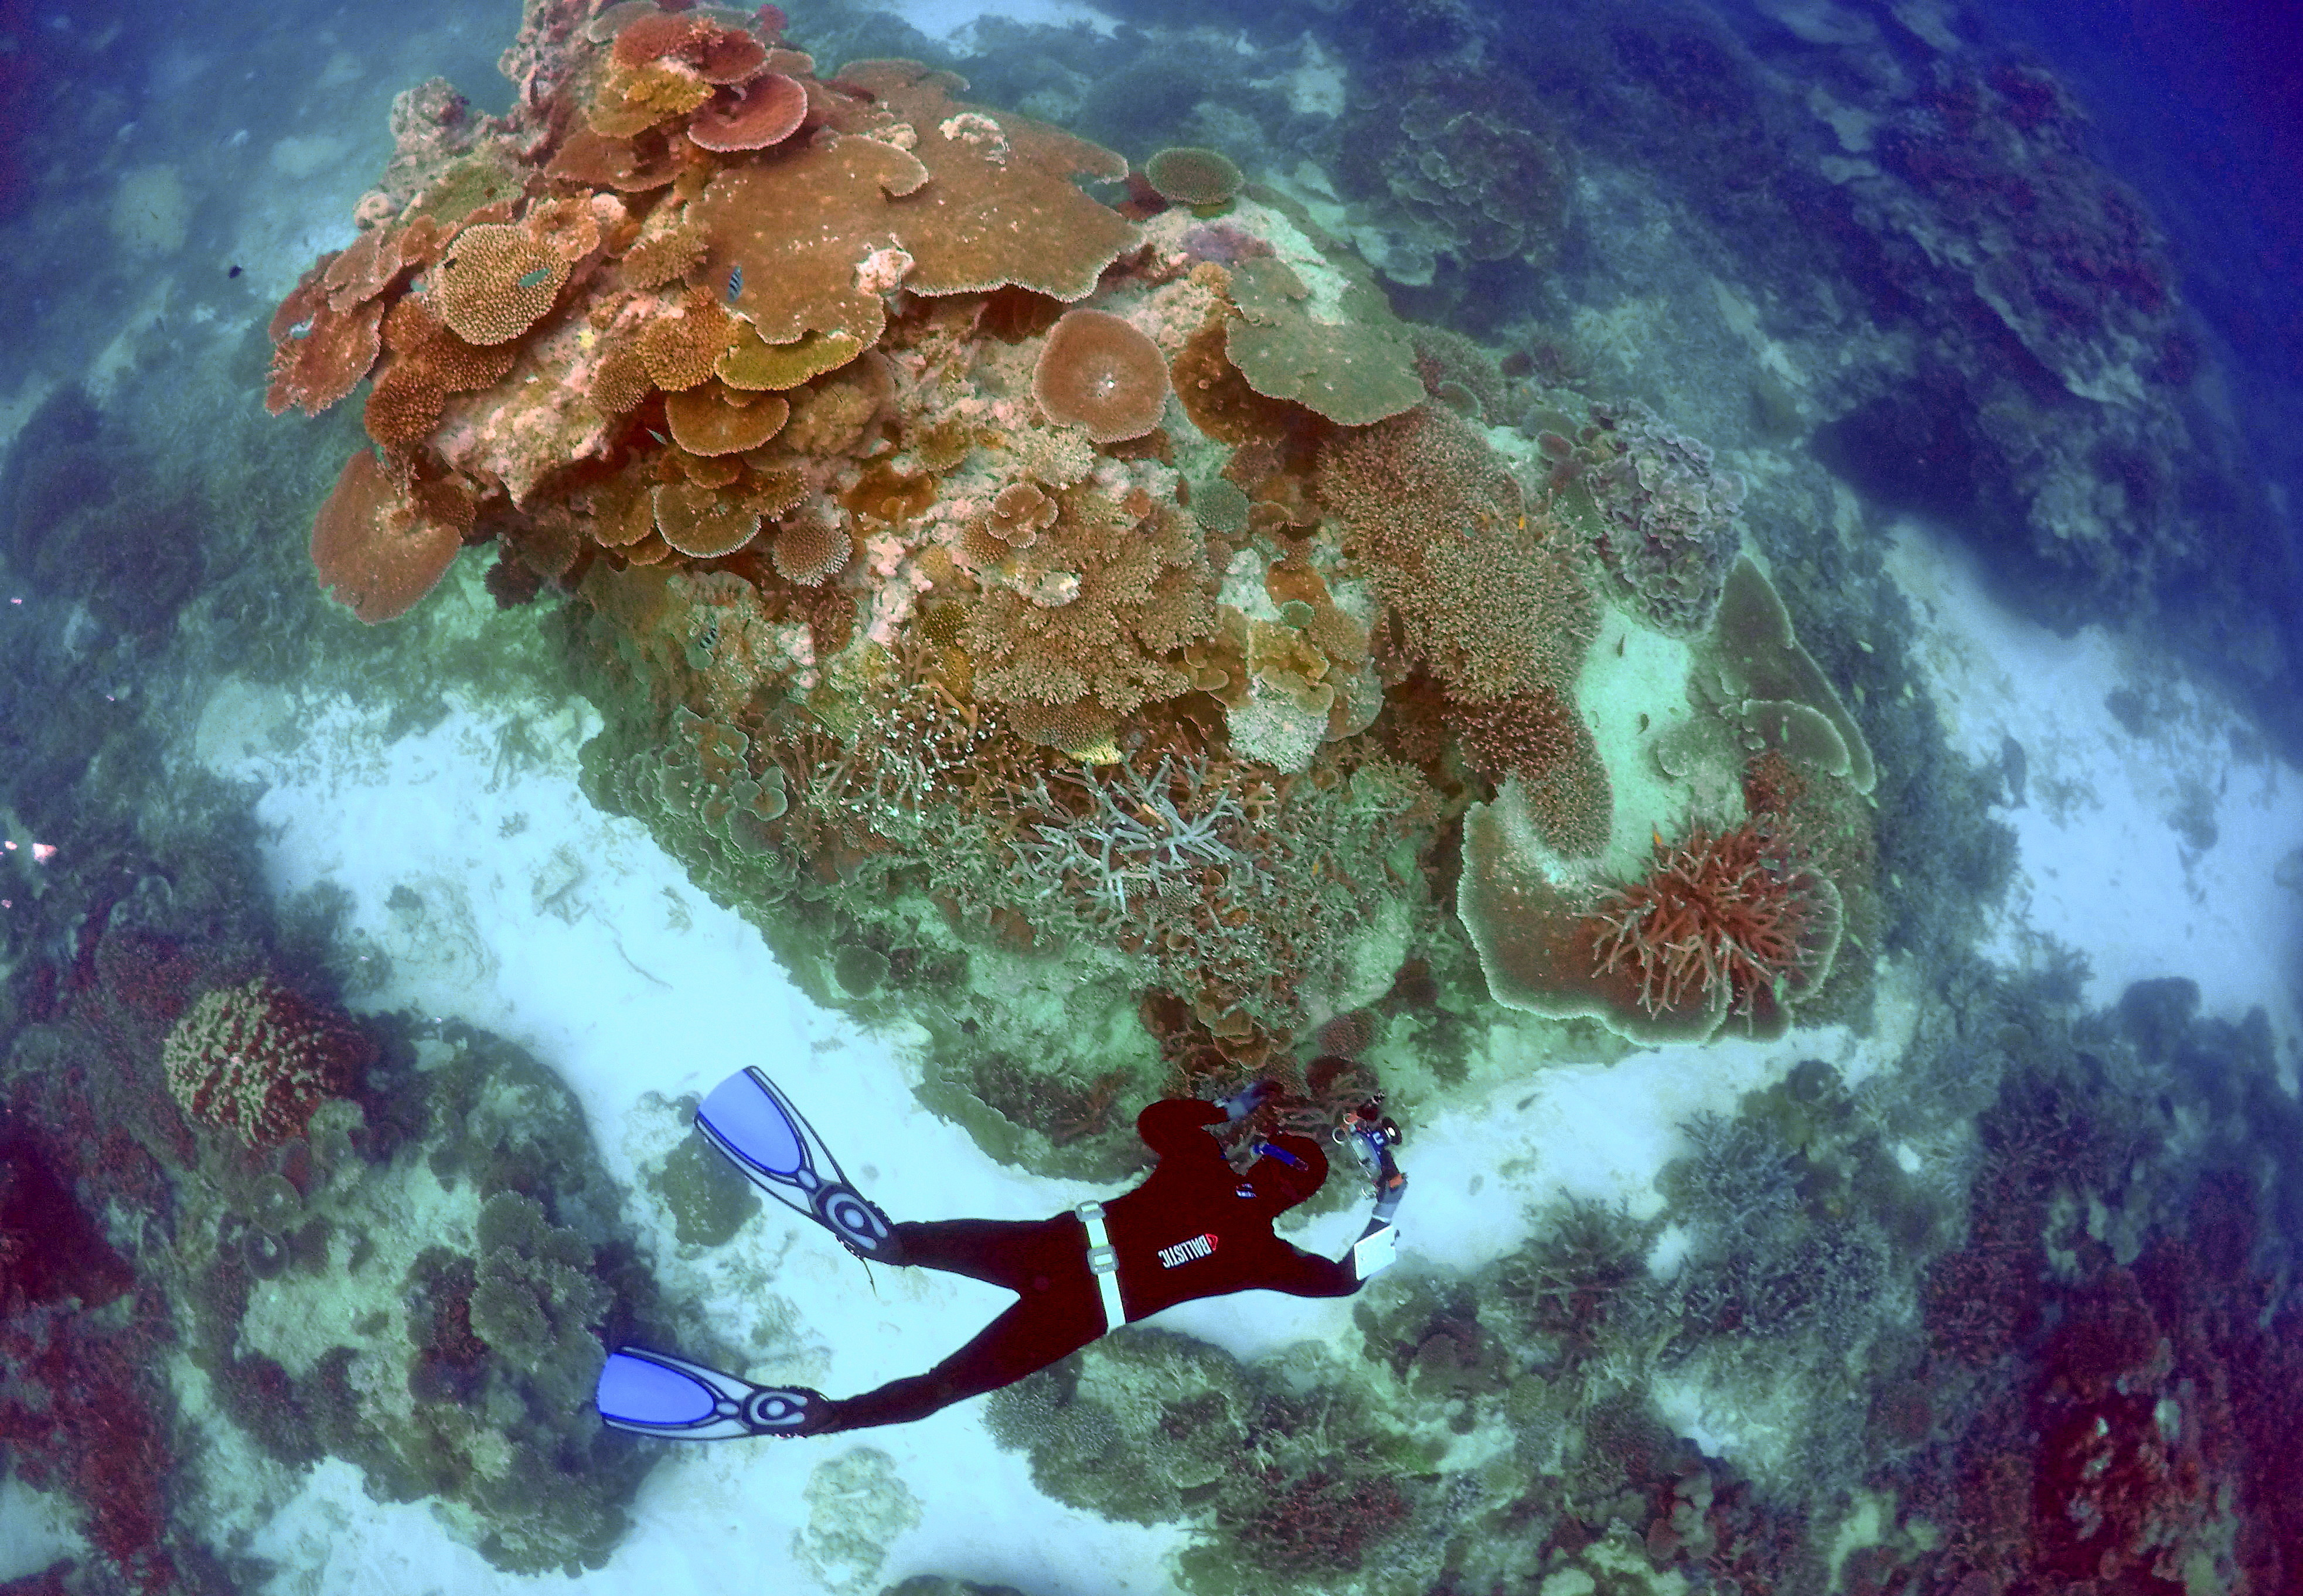 A diver swims over the great barrier reef, an ecological sites that is popular with tourists